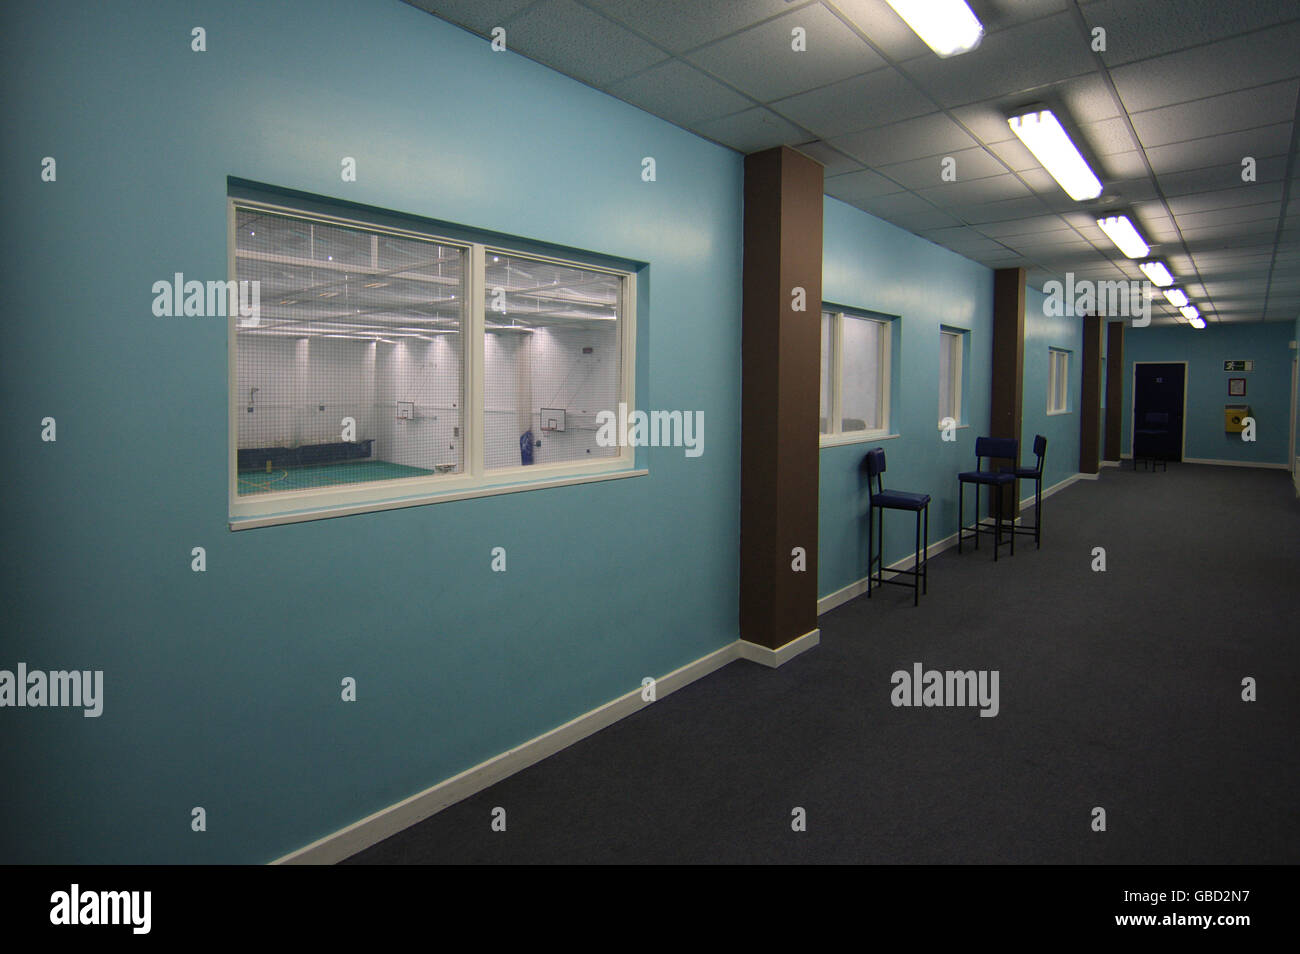 General view of the hallway at the Pemberton Greenish Surrey Academy Stock Photo